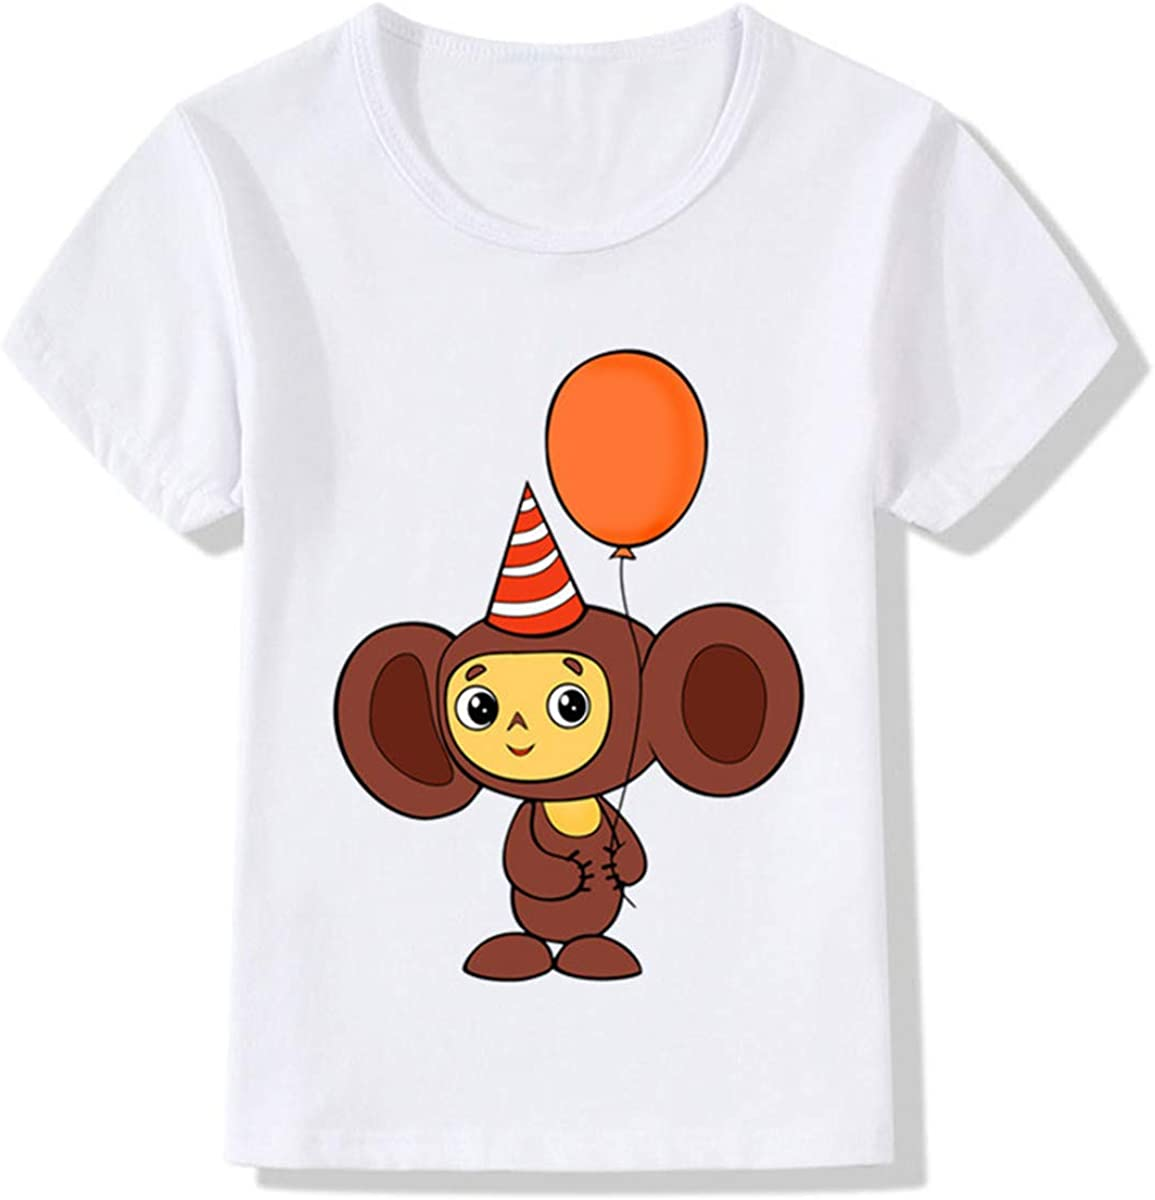 GD-Clothes Monkey Summer Short Sleeves Shirts Toddlers Cotton Print T-Shirts